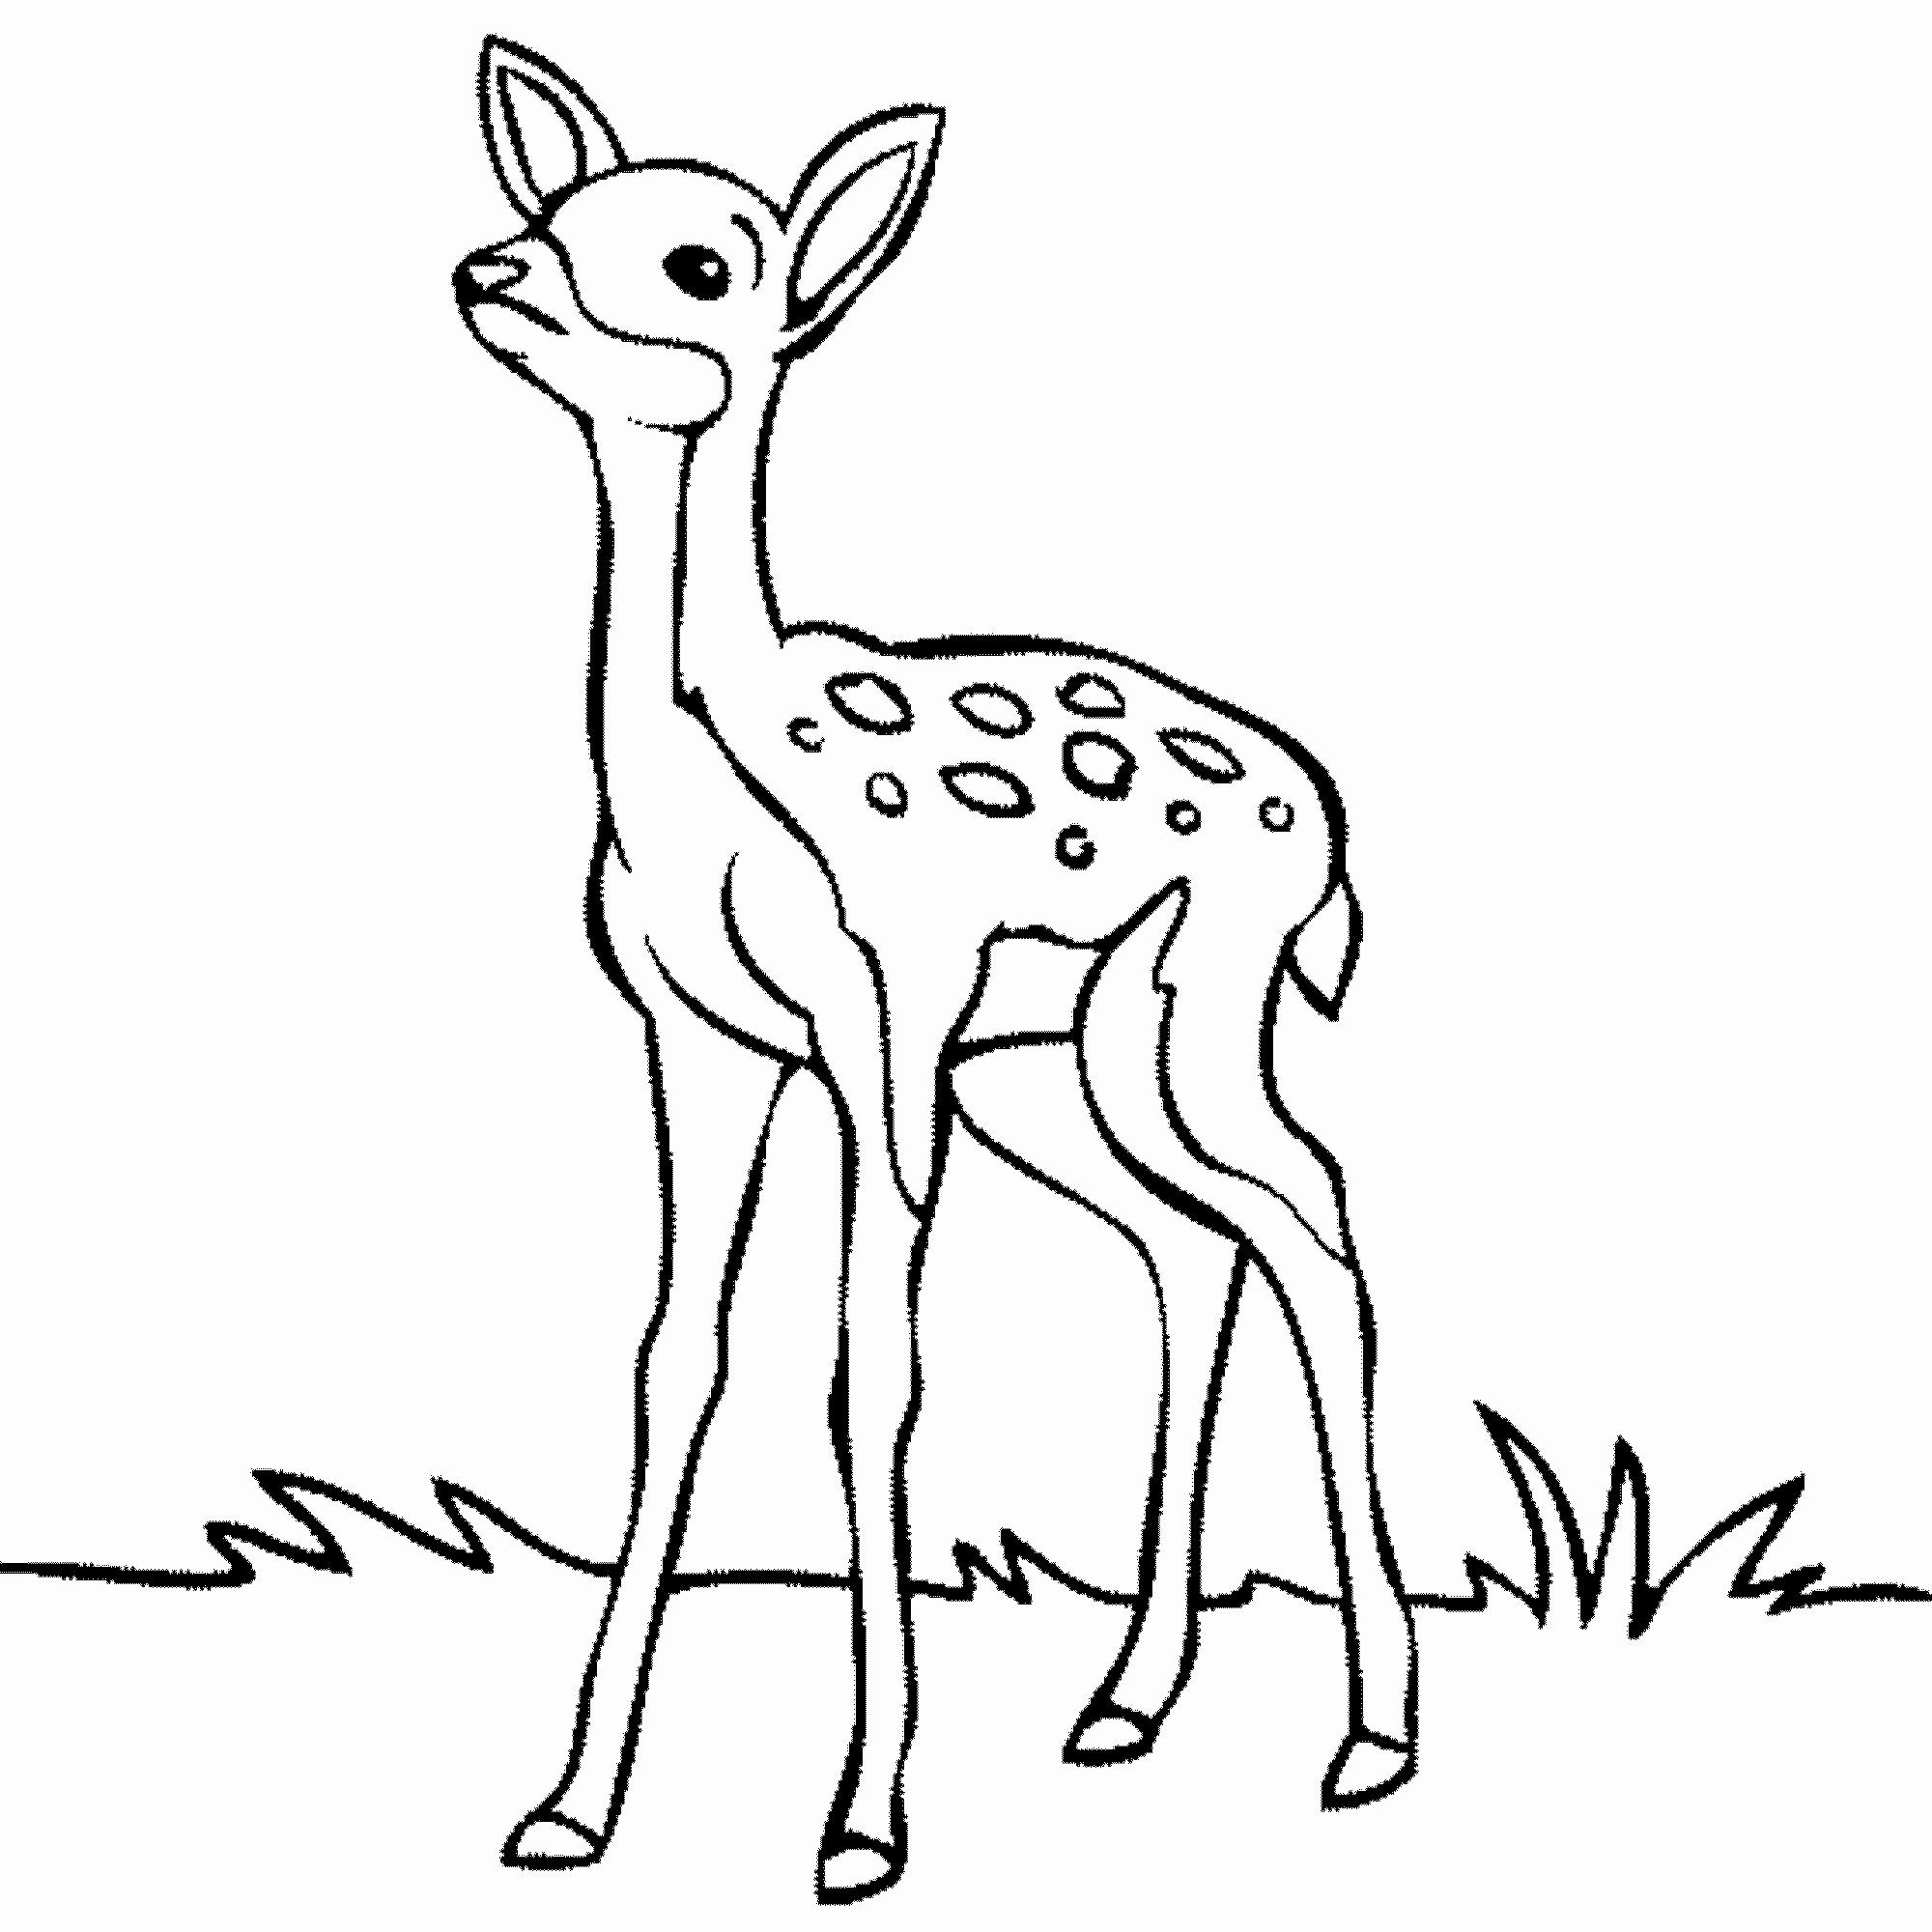 Coloring Pages Rainforest Animals In 2020 Deer Coloring Pages